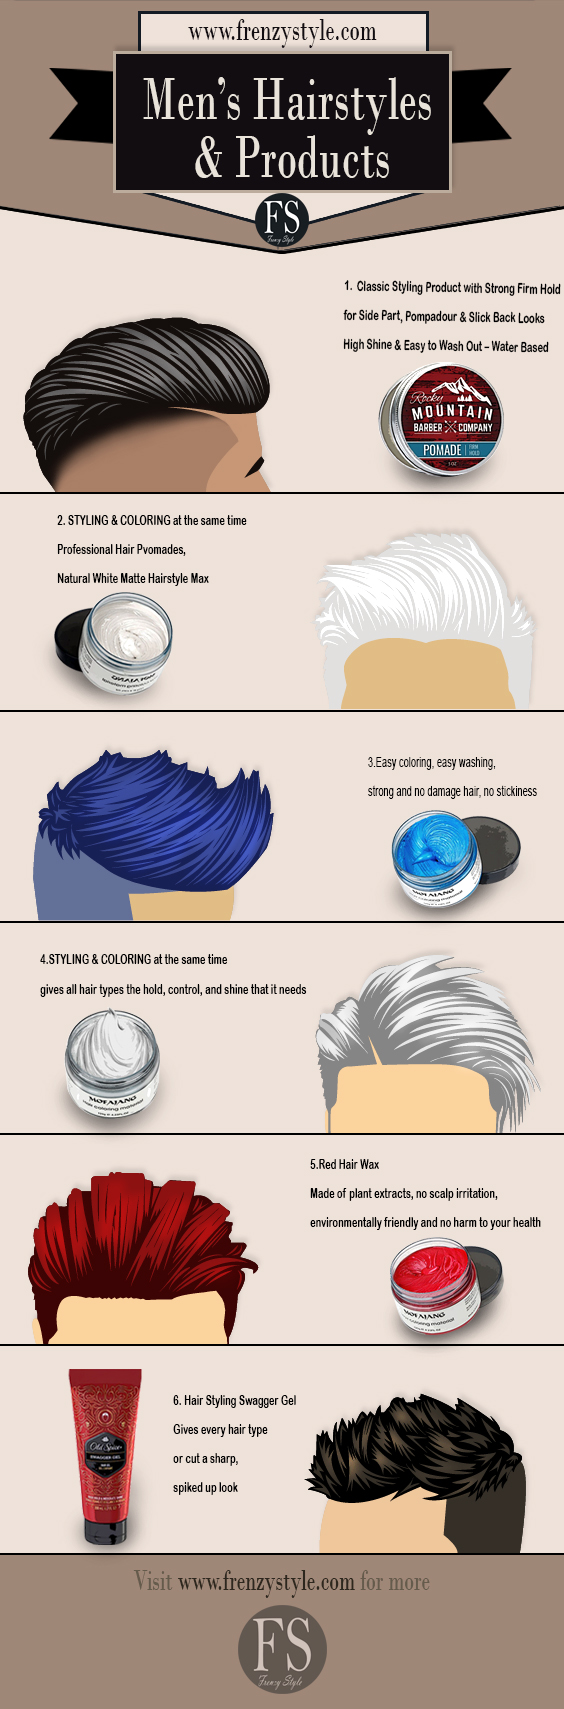 6 Popular Men S Hairstyles And Haircuts And The Products Associated With Them Frenzystyle